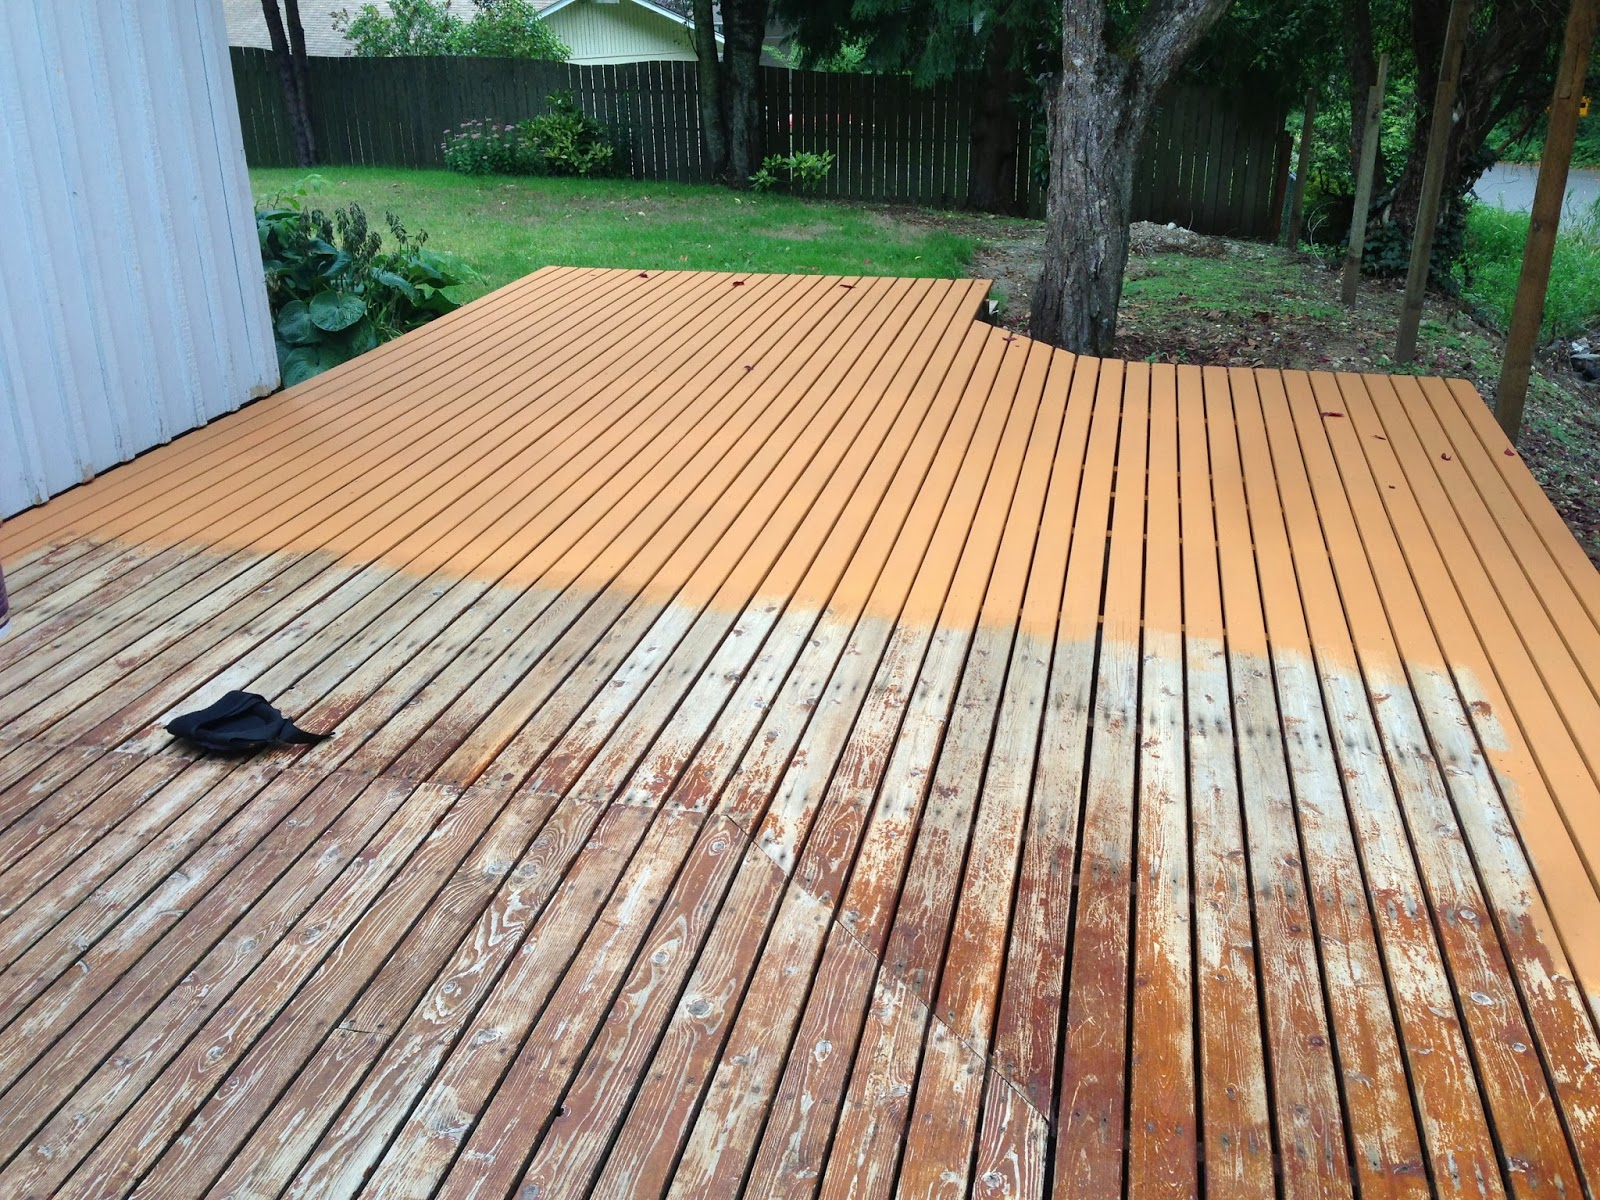 Behr Deck Coating | Home Depot Deck Over Paint | Behr Deck Over